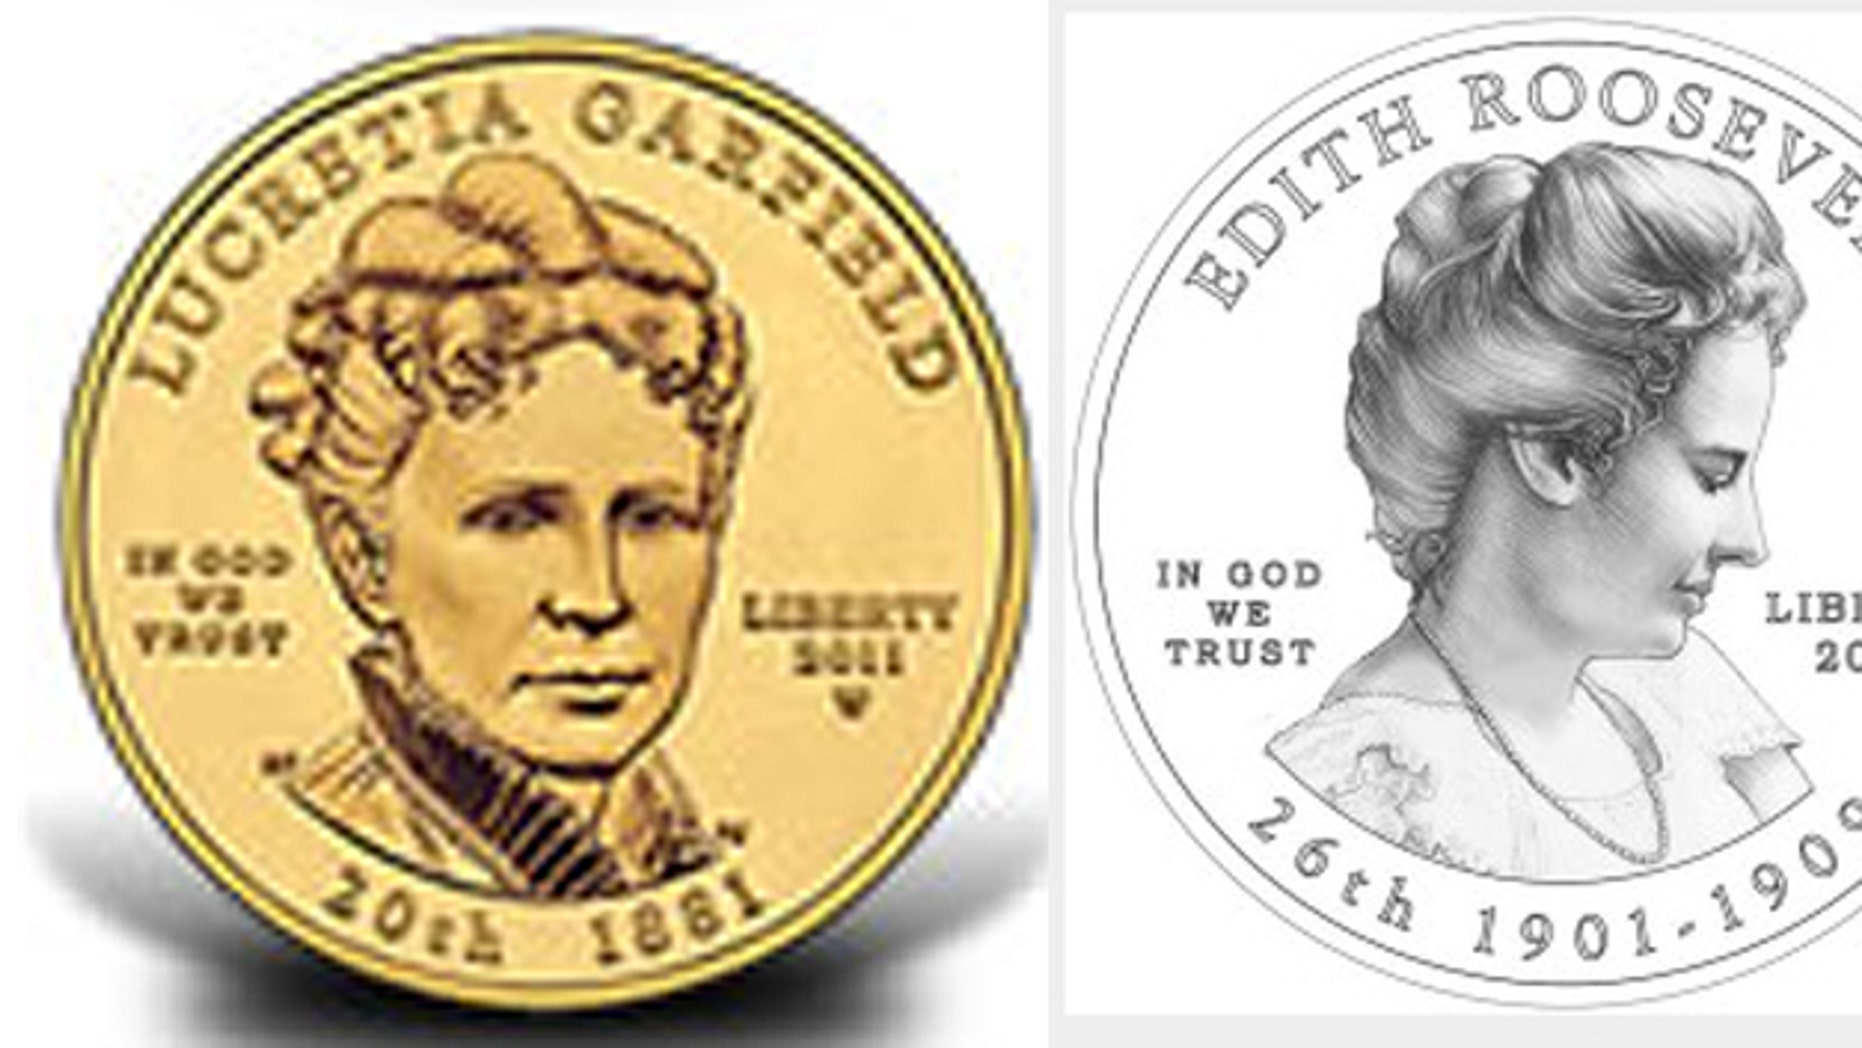 Former first lady Lucretia Garfield, left, made it on a coin in 2011. Edith Roosevelt, right, is set to make her debut later this year.